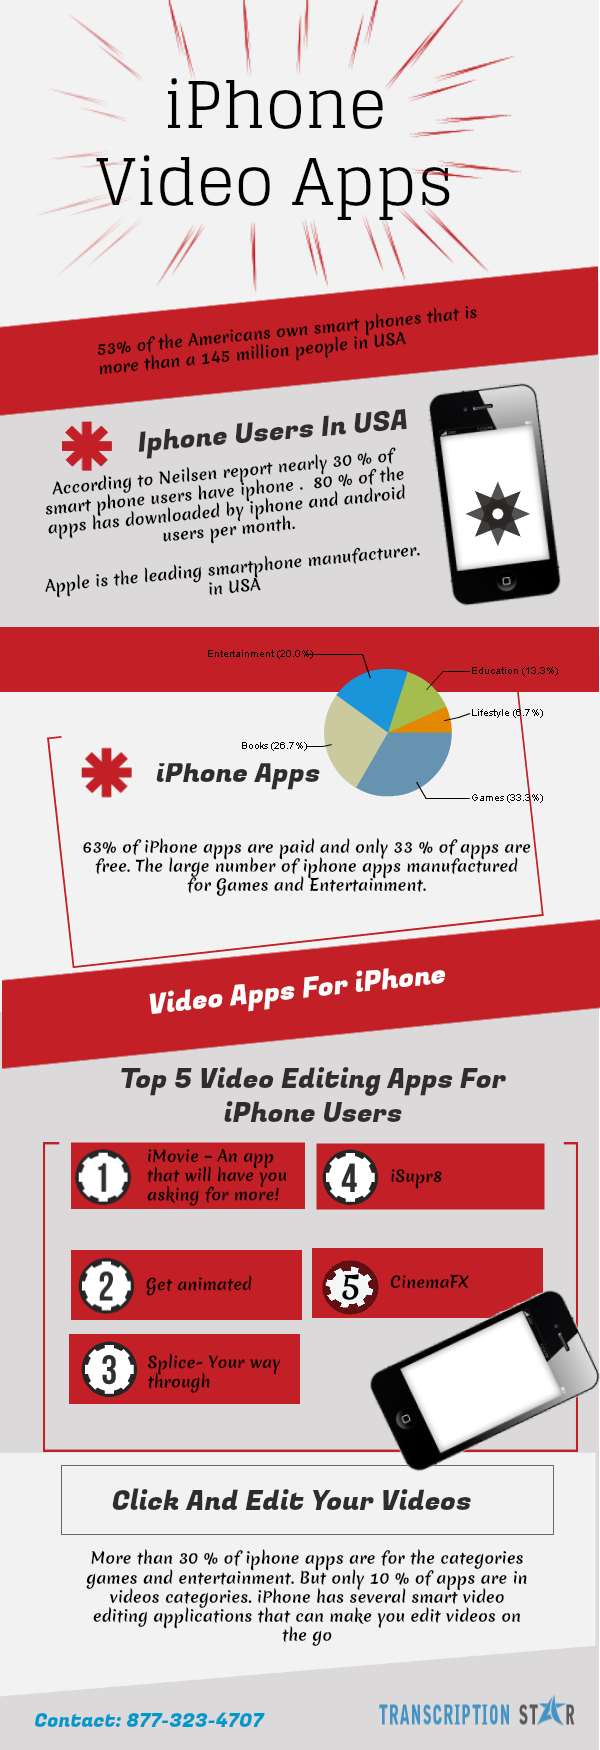 Video editing apps for iphone-TranscriptionStar